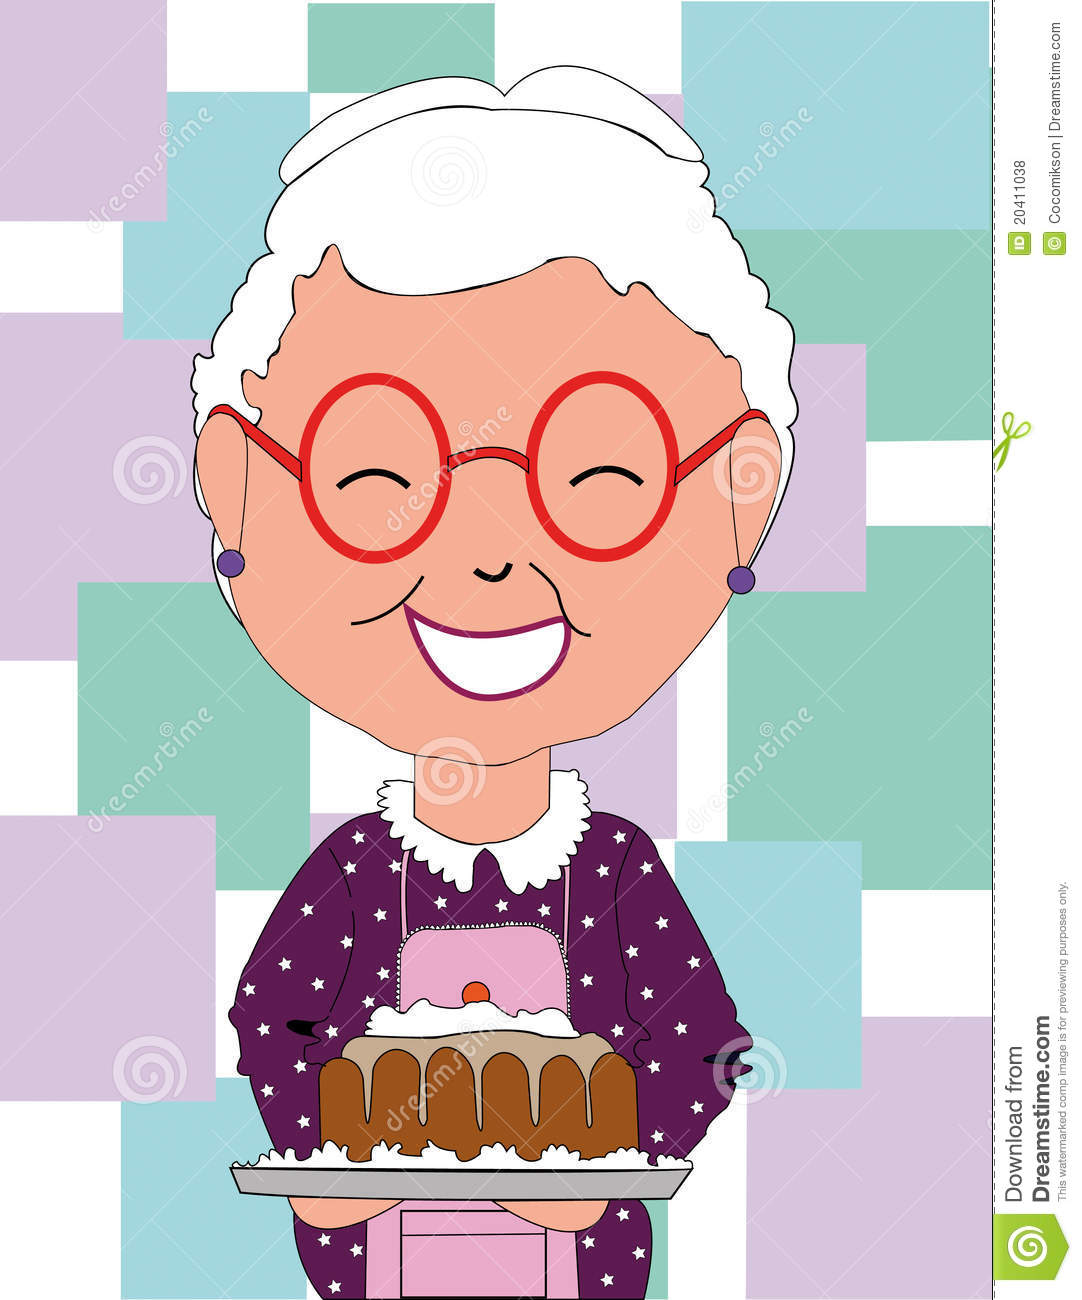 Grandma Birthday Clipart.